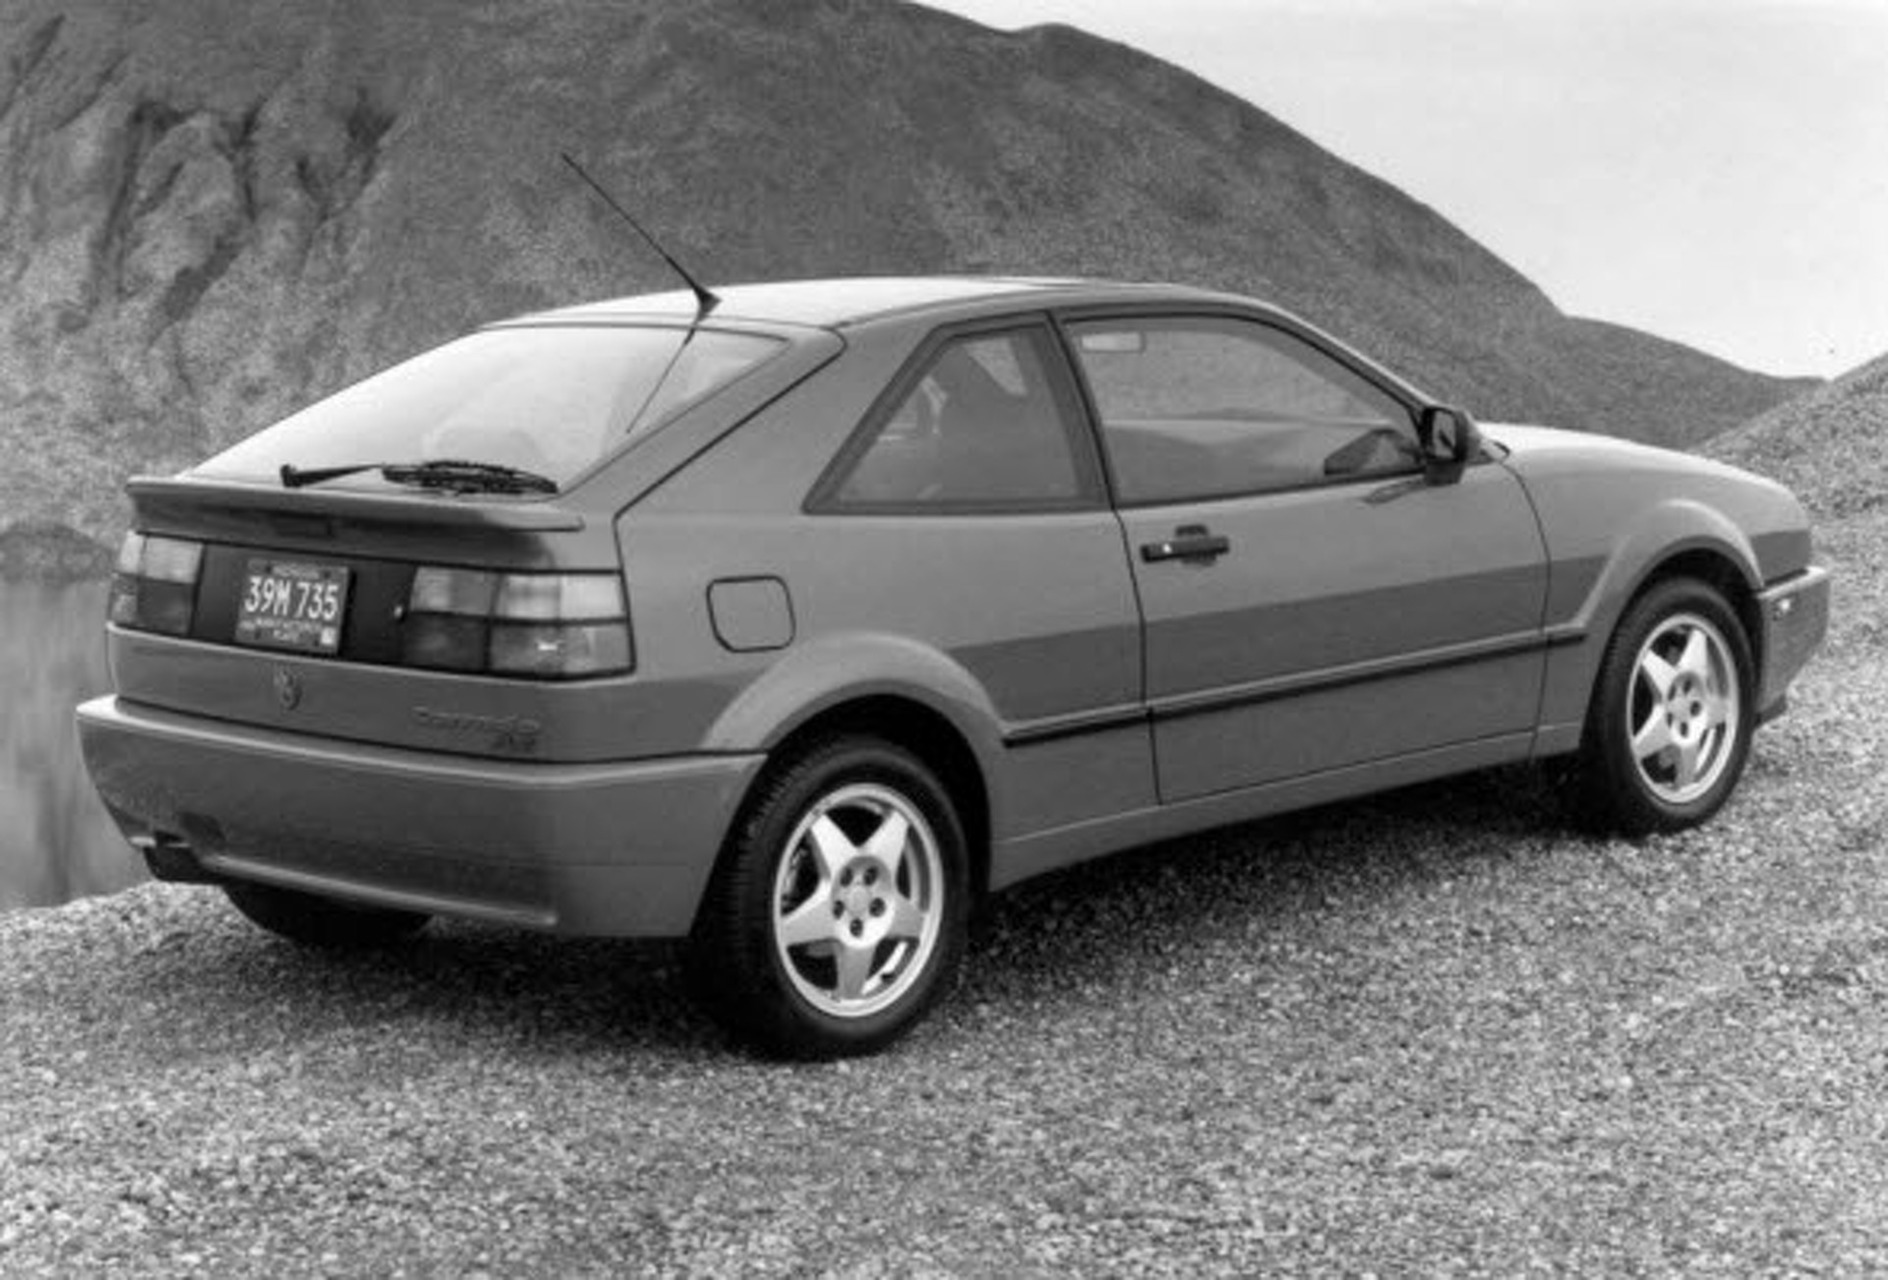 Sports Car Face-Plants: Volkswagen Corrado (1988 to 1995)